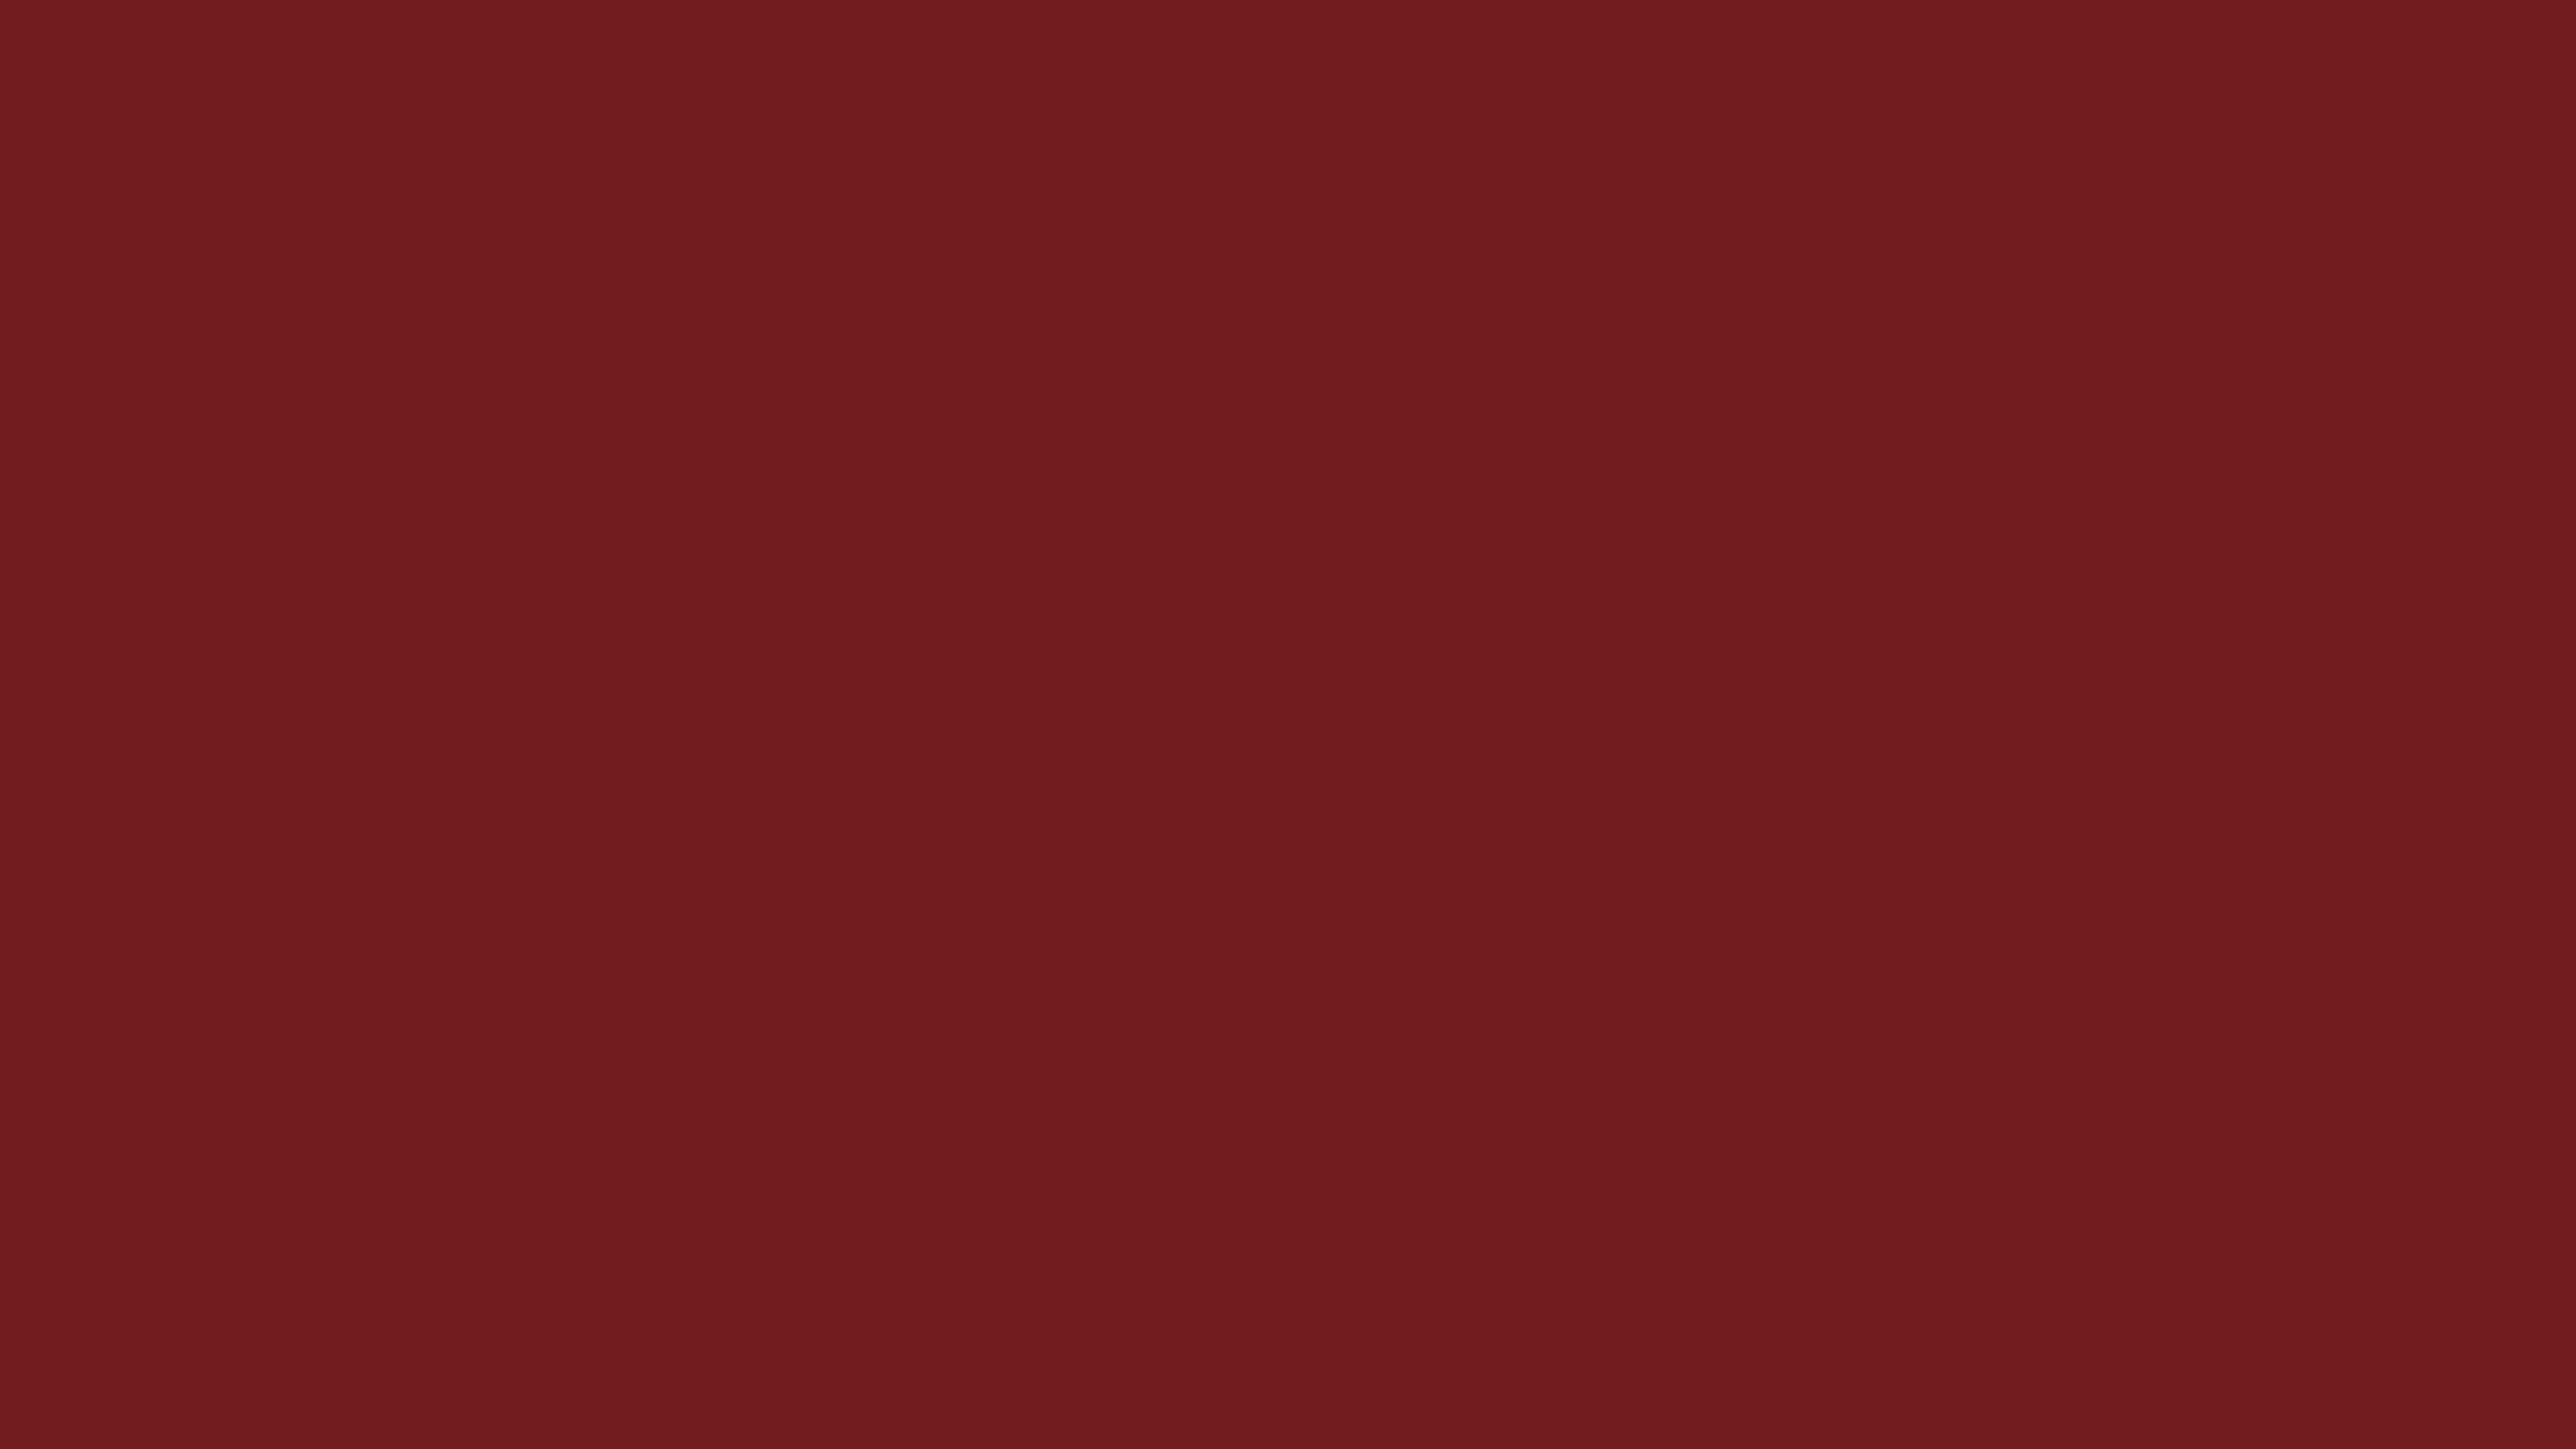 5120x2880 Prune Solid Color Background